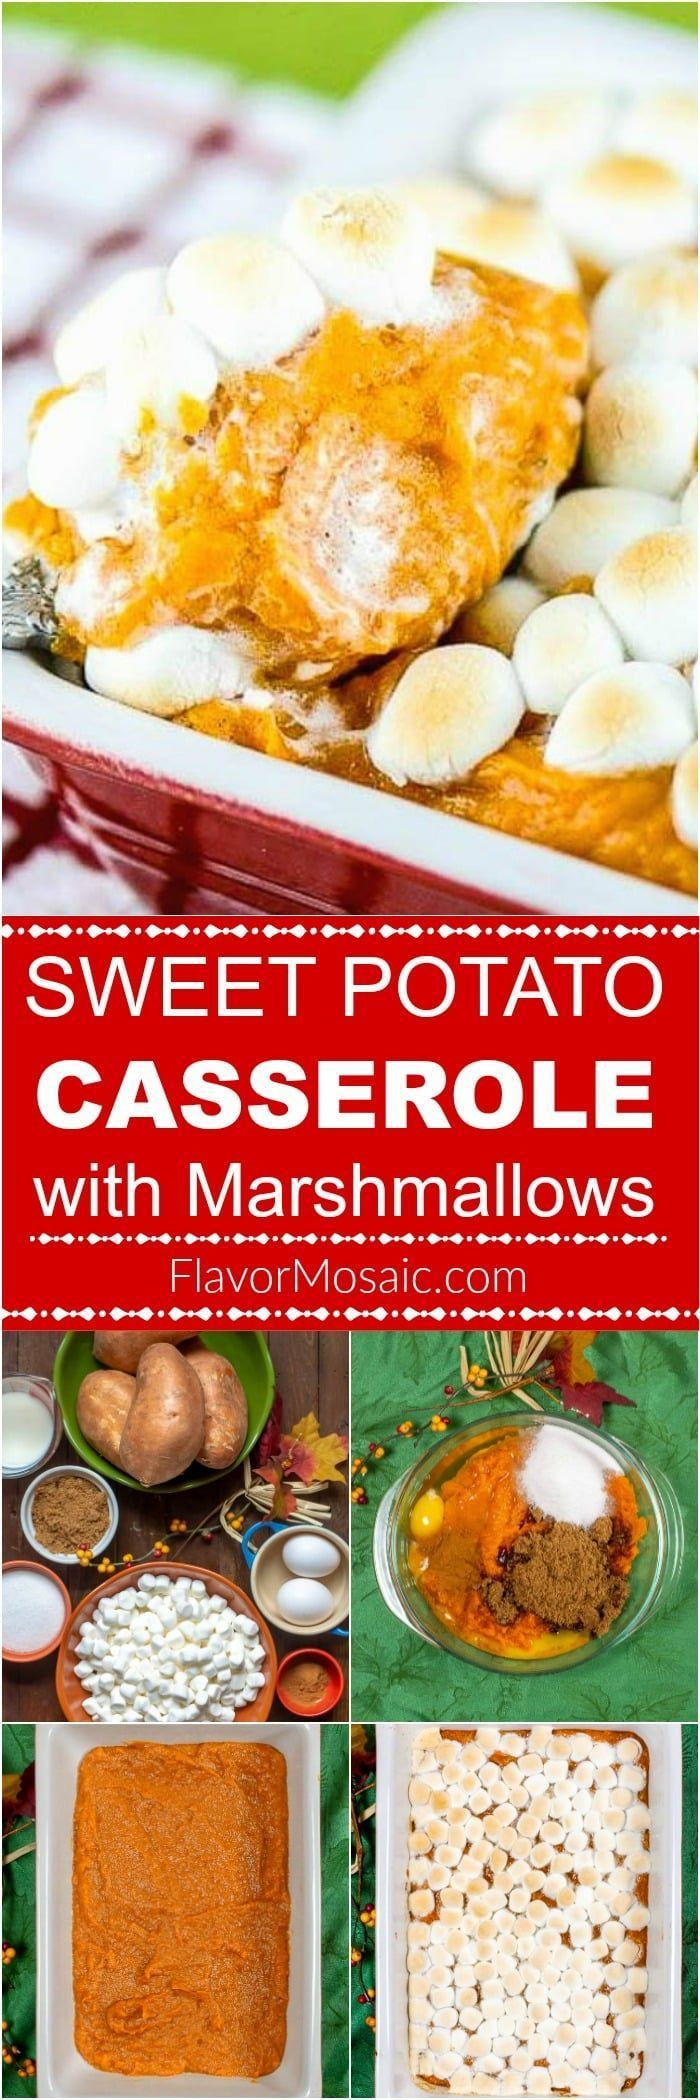 This Sweet Potato Casserole with Marshmallows, made with fresh sweet potatoes, has been a traditional Thanksgiving side dish in our family. #chickensidedishes This Sweet Potato Casserole with Marshmallows, made with fresh sweet potatoes, has been a traditional Thanksgiving side dish in our family. #sweetpotatocasserolewithmarshmallows This Sweet Potato Casserole with Marshmallows, made with fresh sweet potatoes, has been a traditional Thanksgiving side dish in our family. #chickensidedishes This #sweetpotatocasserolewithmarshmallows